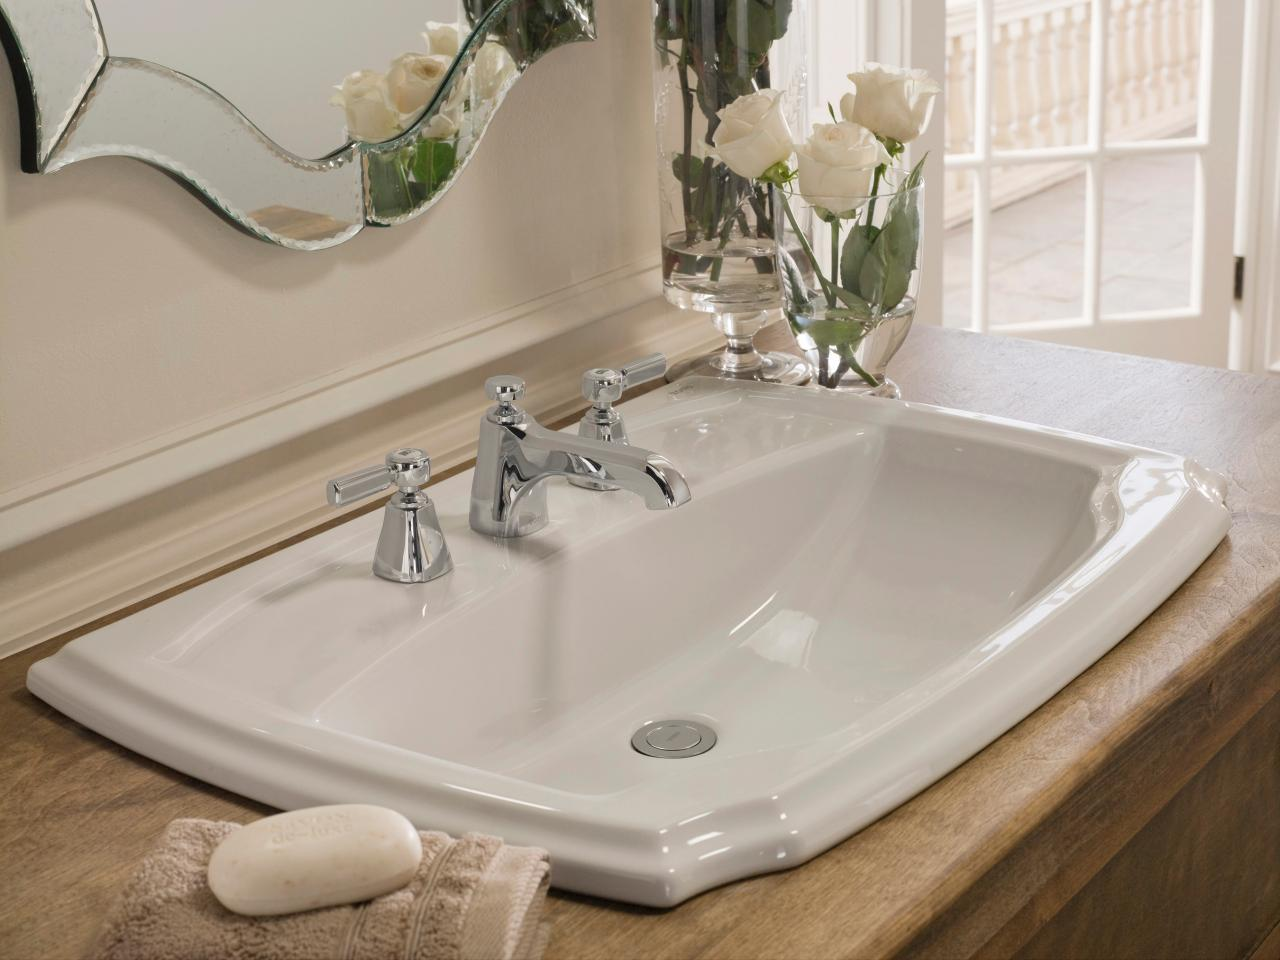 Bathroom Sinks Reviews best bathroom faucets - (ultimate guide & reviews 2017)